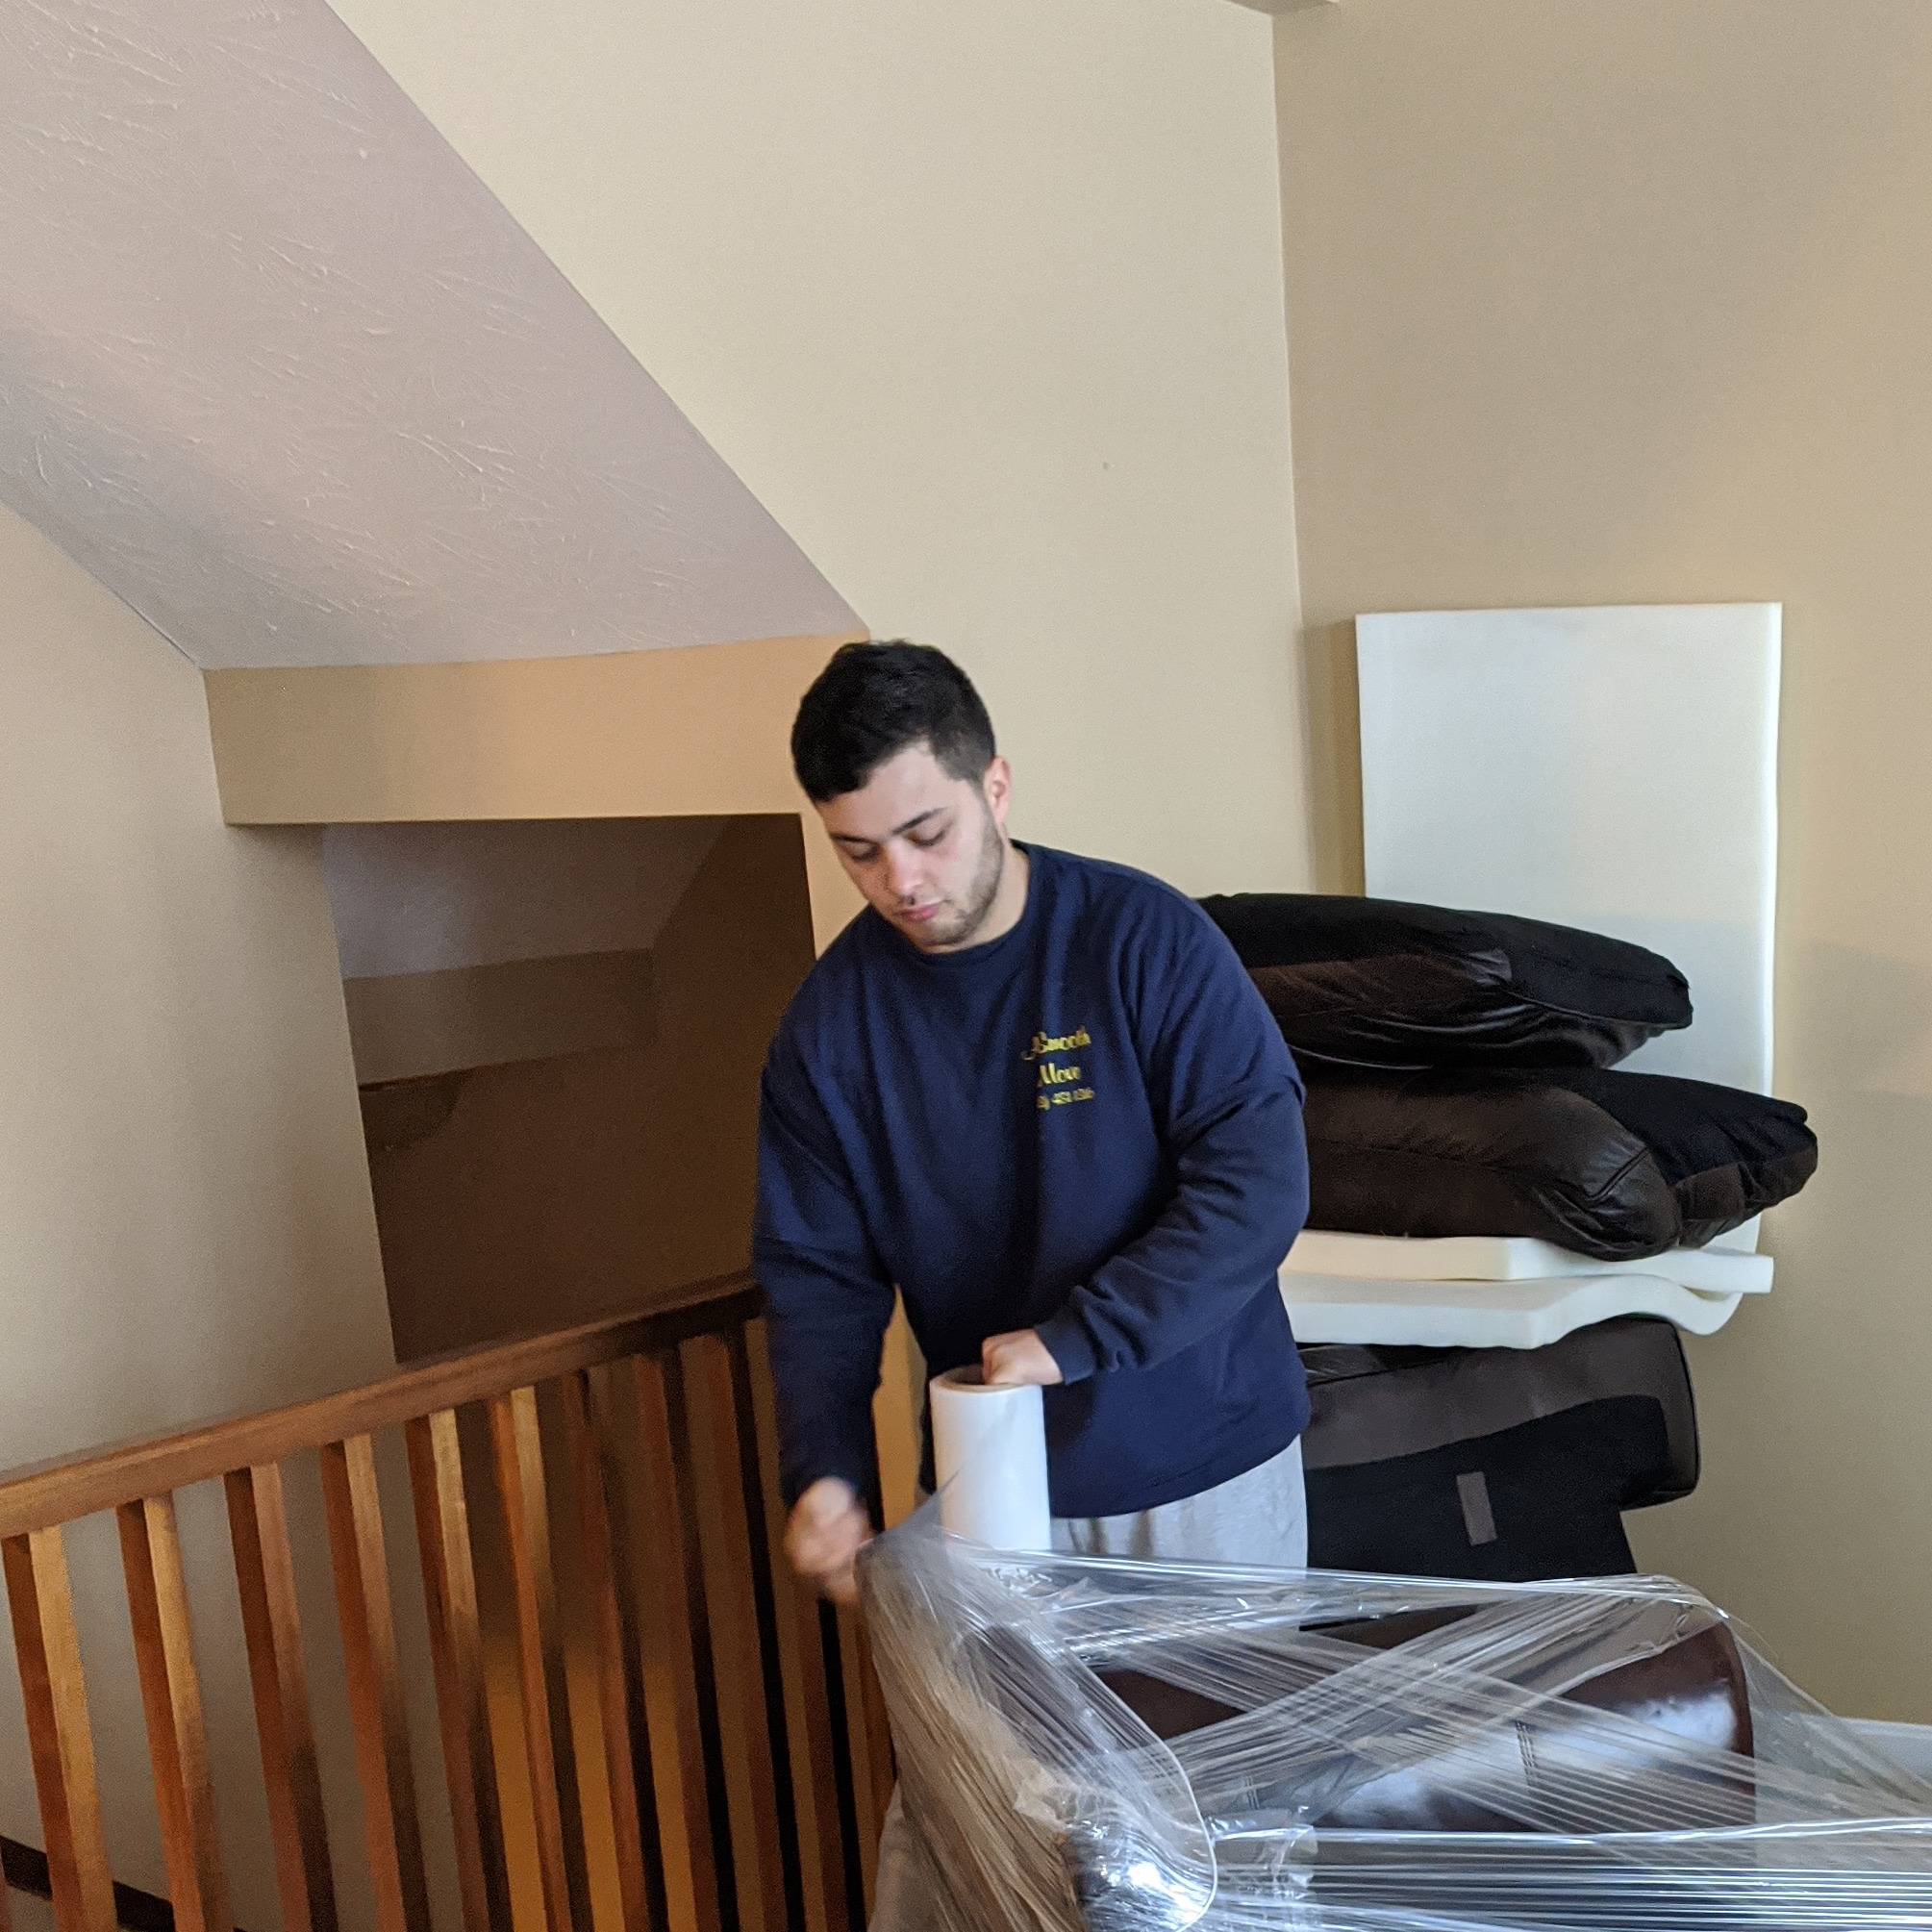 4 Mistakes People Make When Moving Themselves